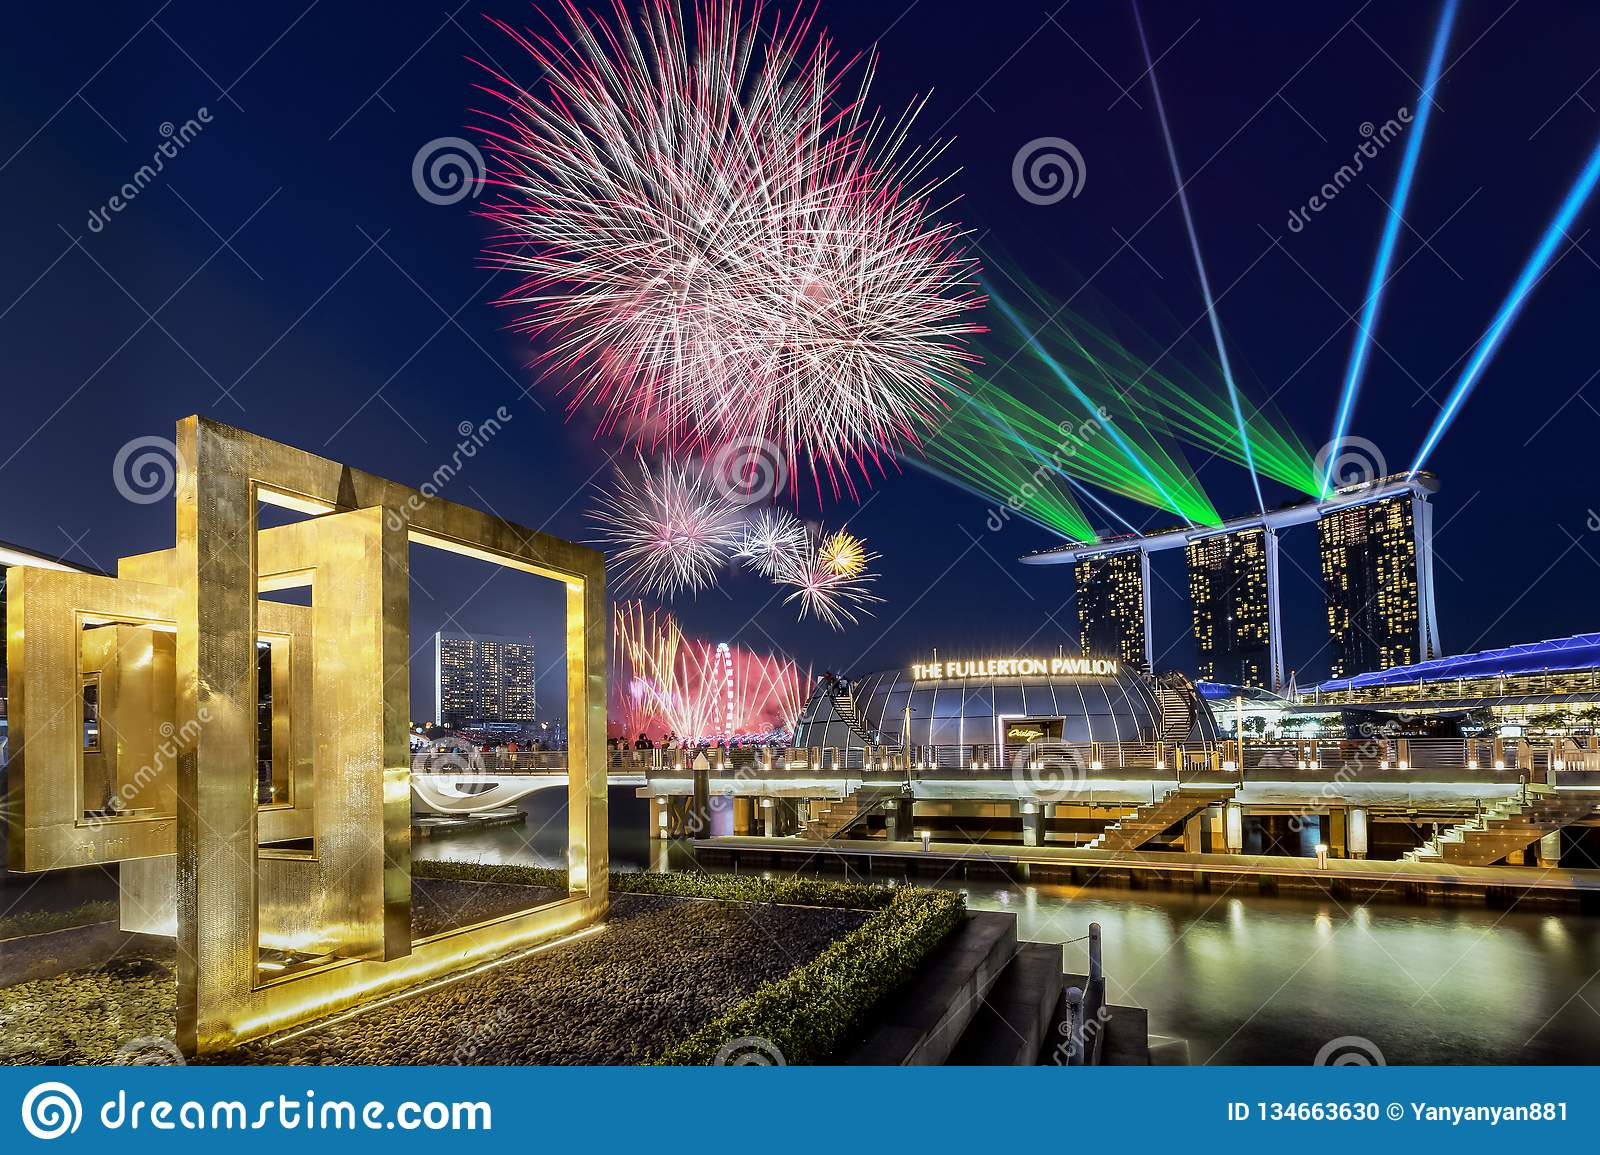 Beautiful fireworks display during National day parade in Marina Bay in Singapore